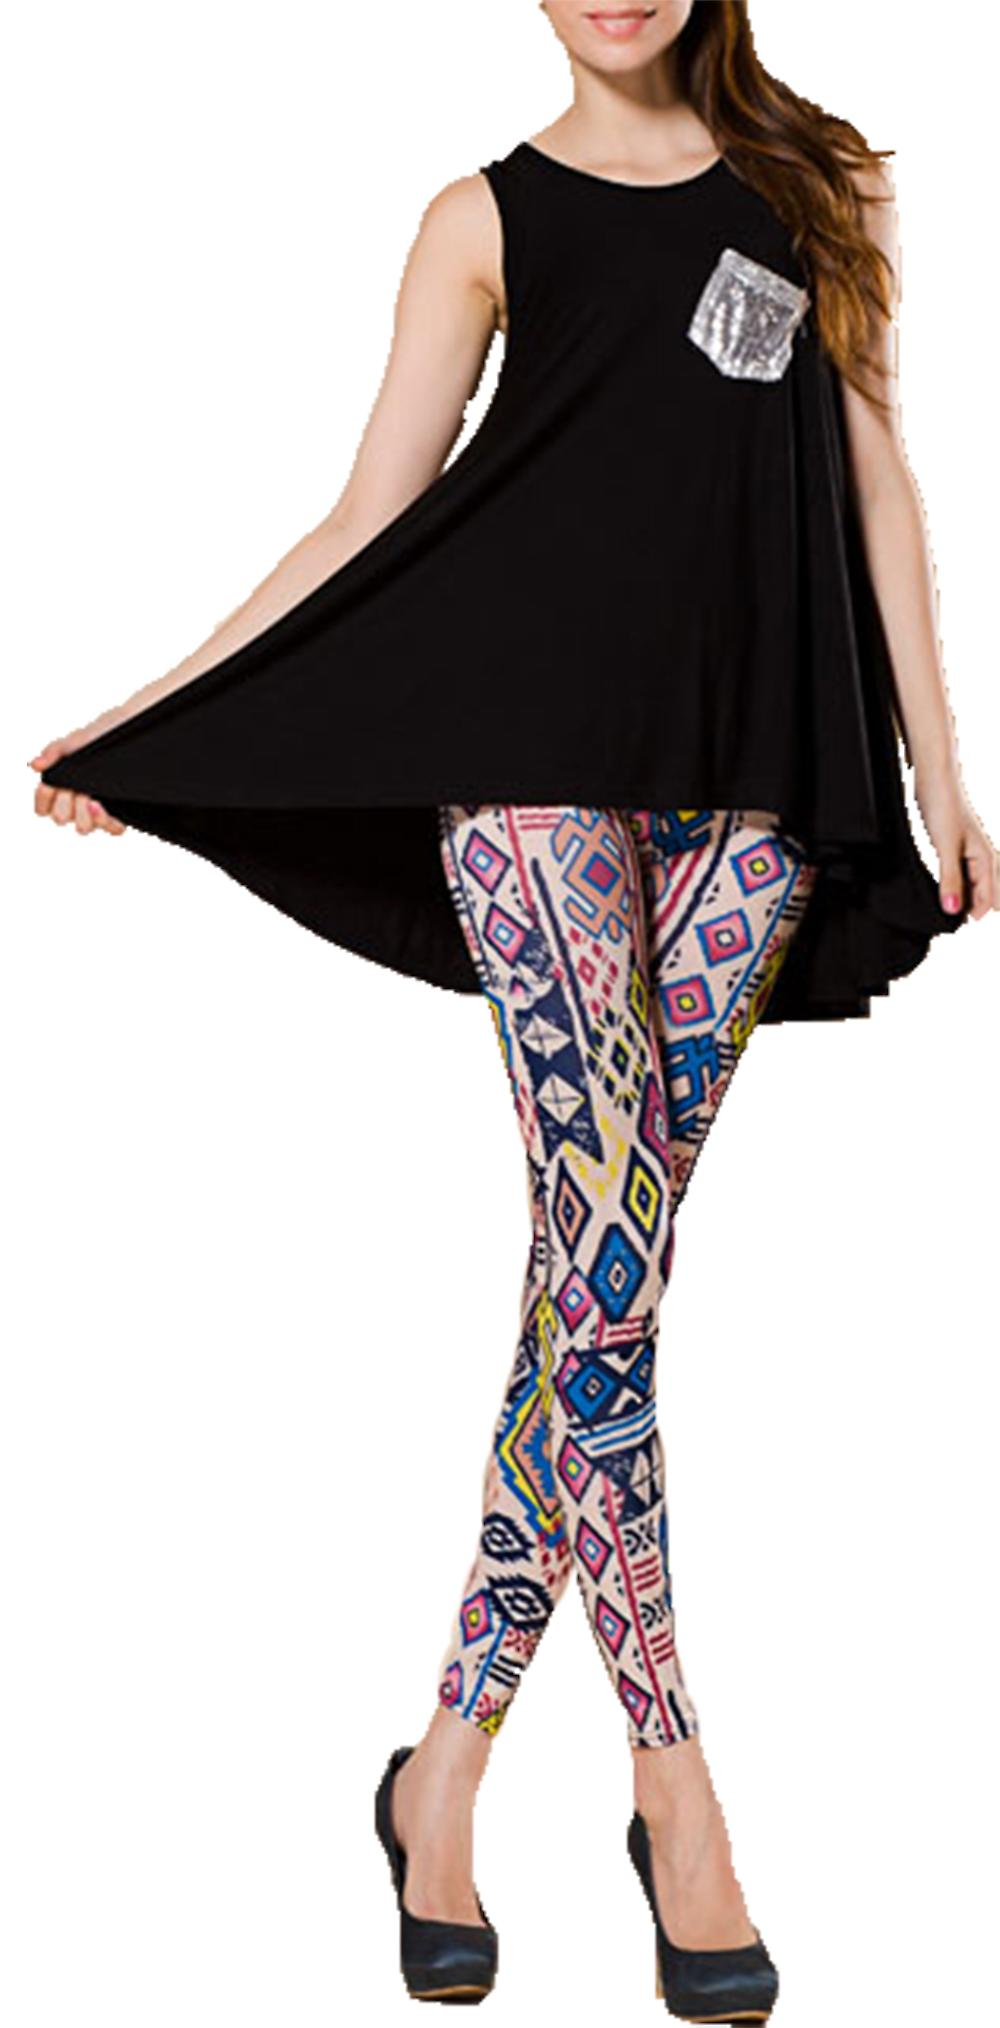 Waooh - Legging reasons graphics